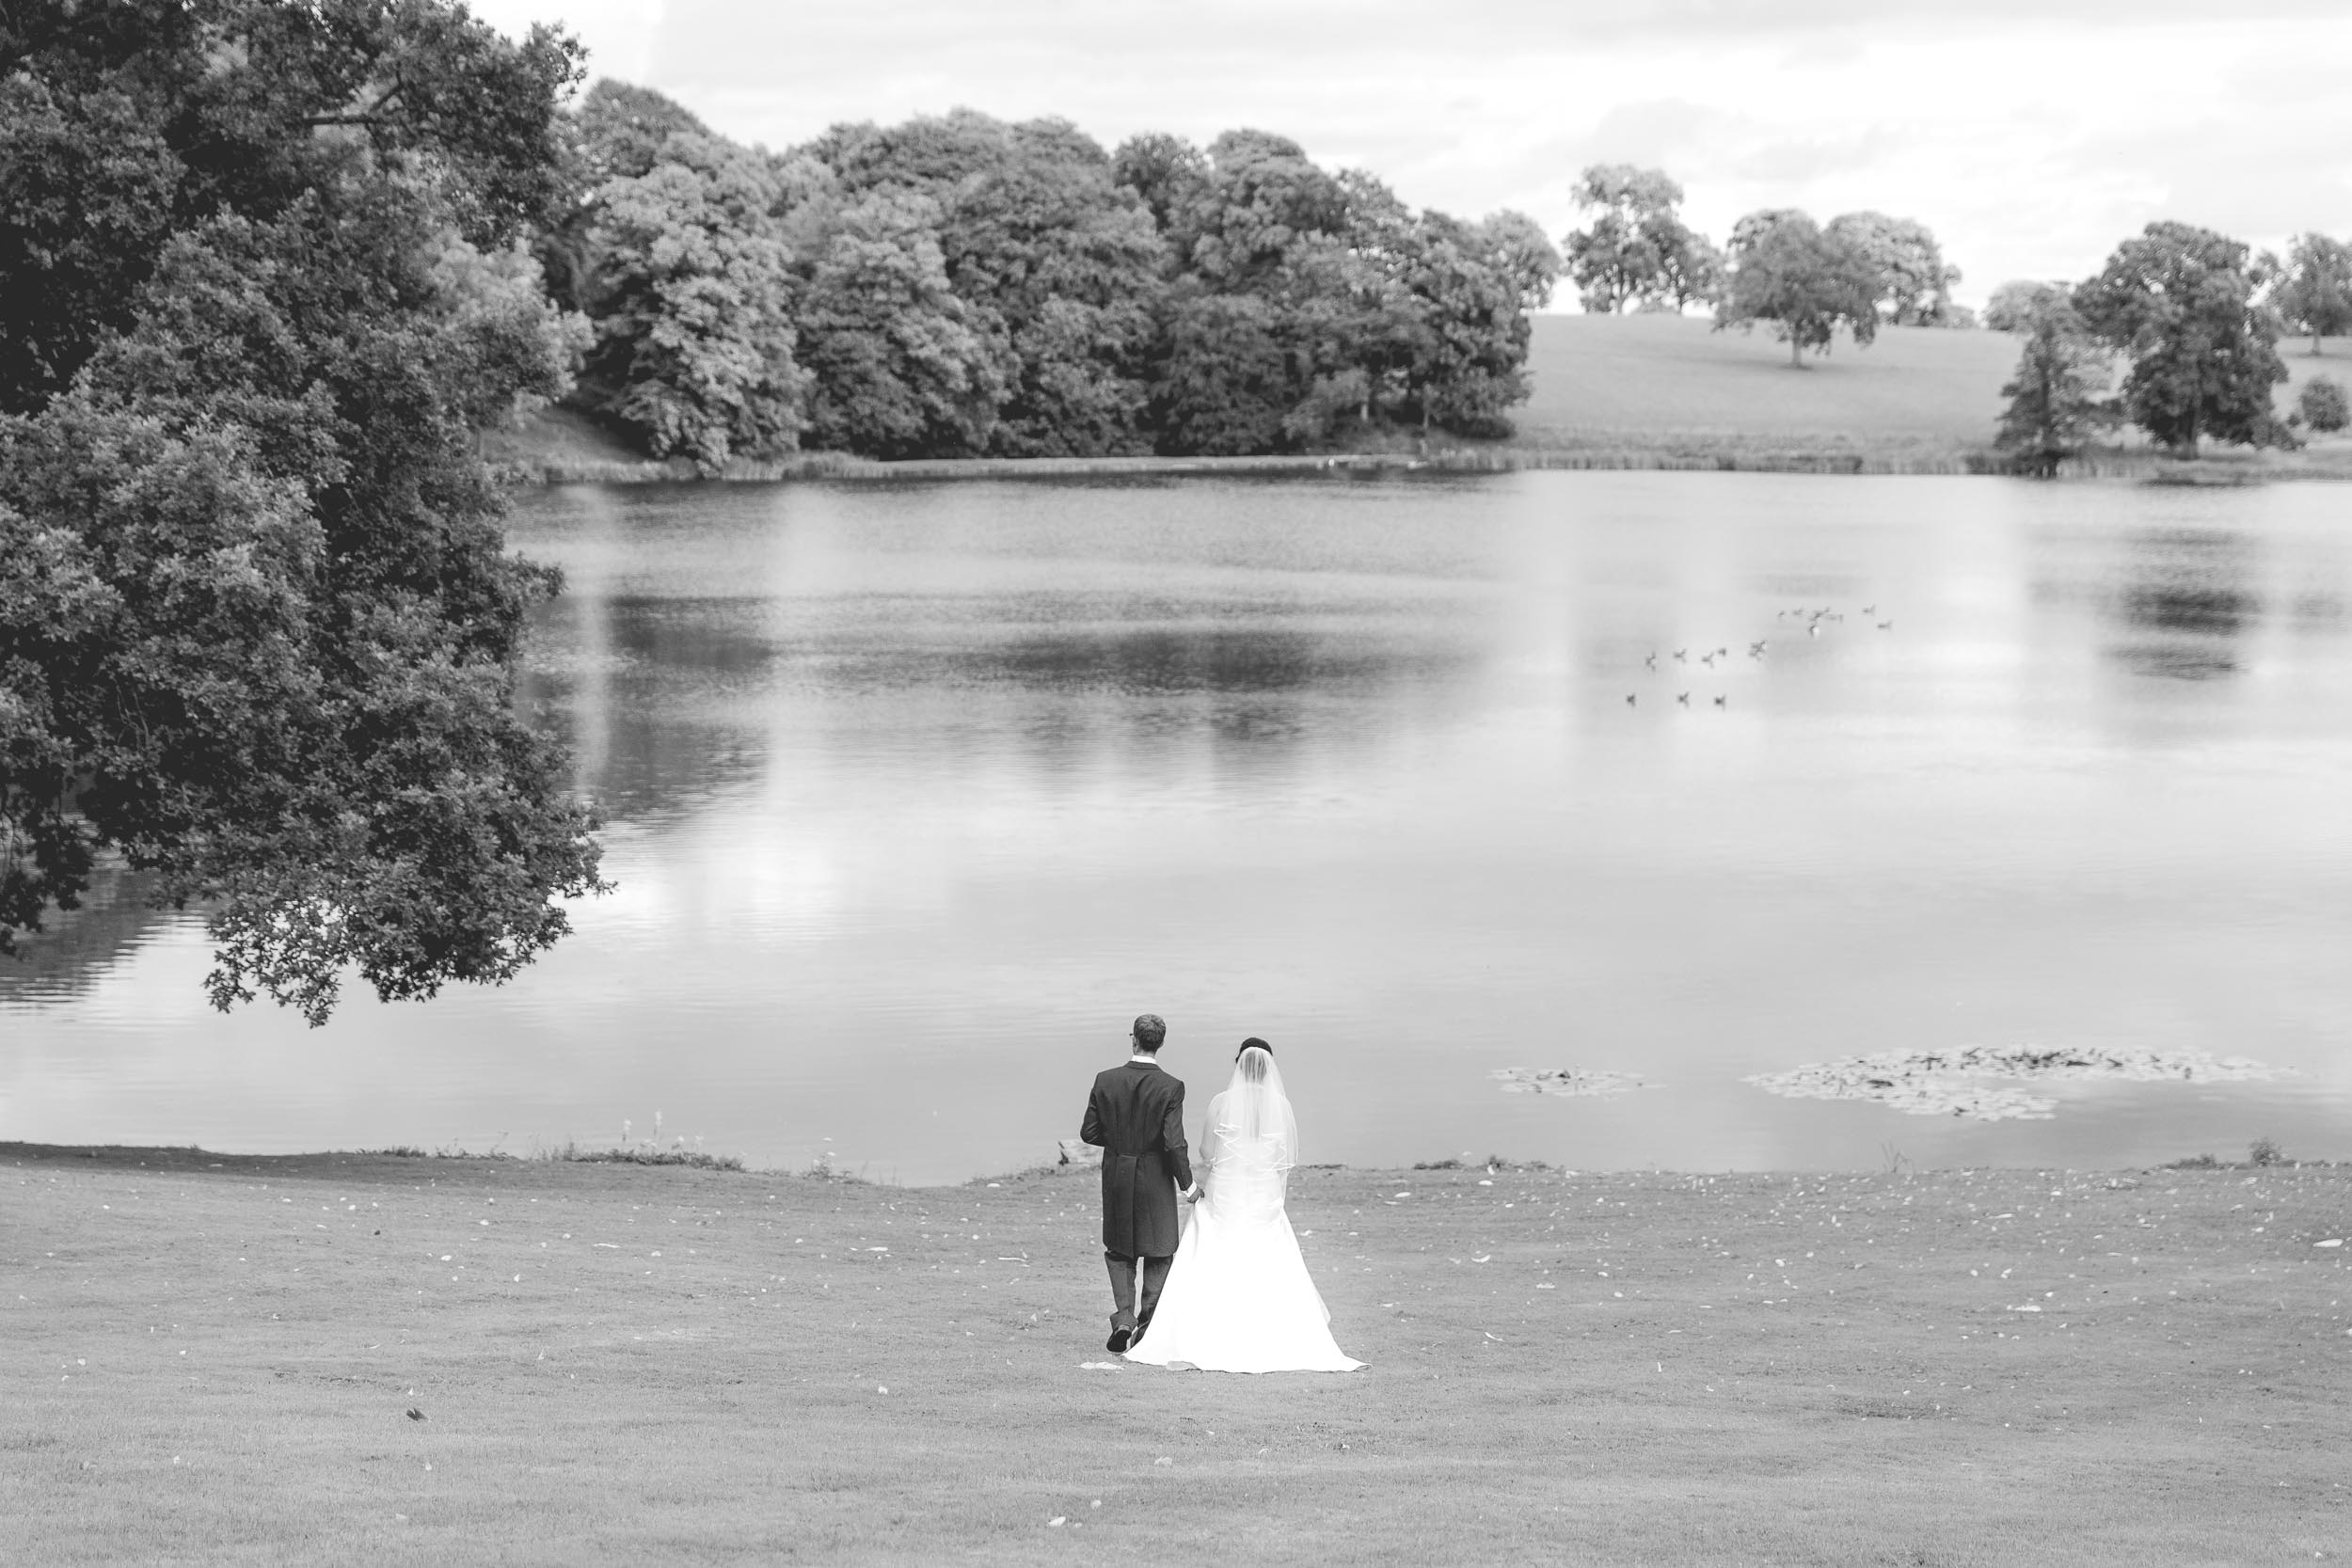 Nicola & Matt-Wedding-Coniston Cold Hotel-Yorkshire-photo-560.jpg